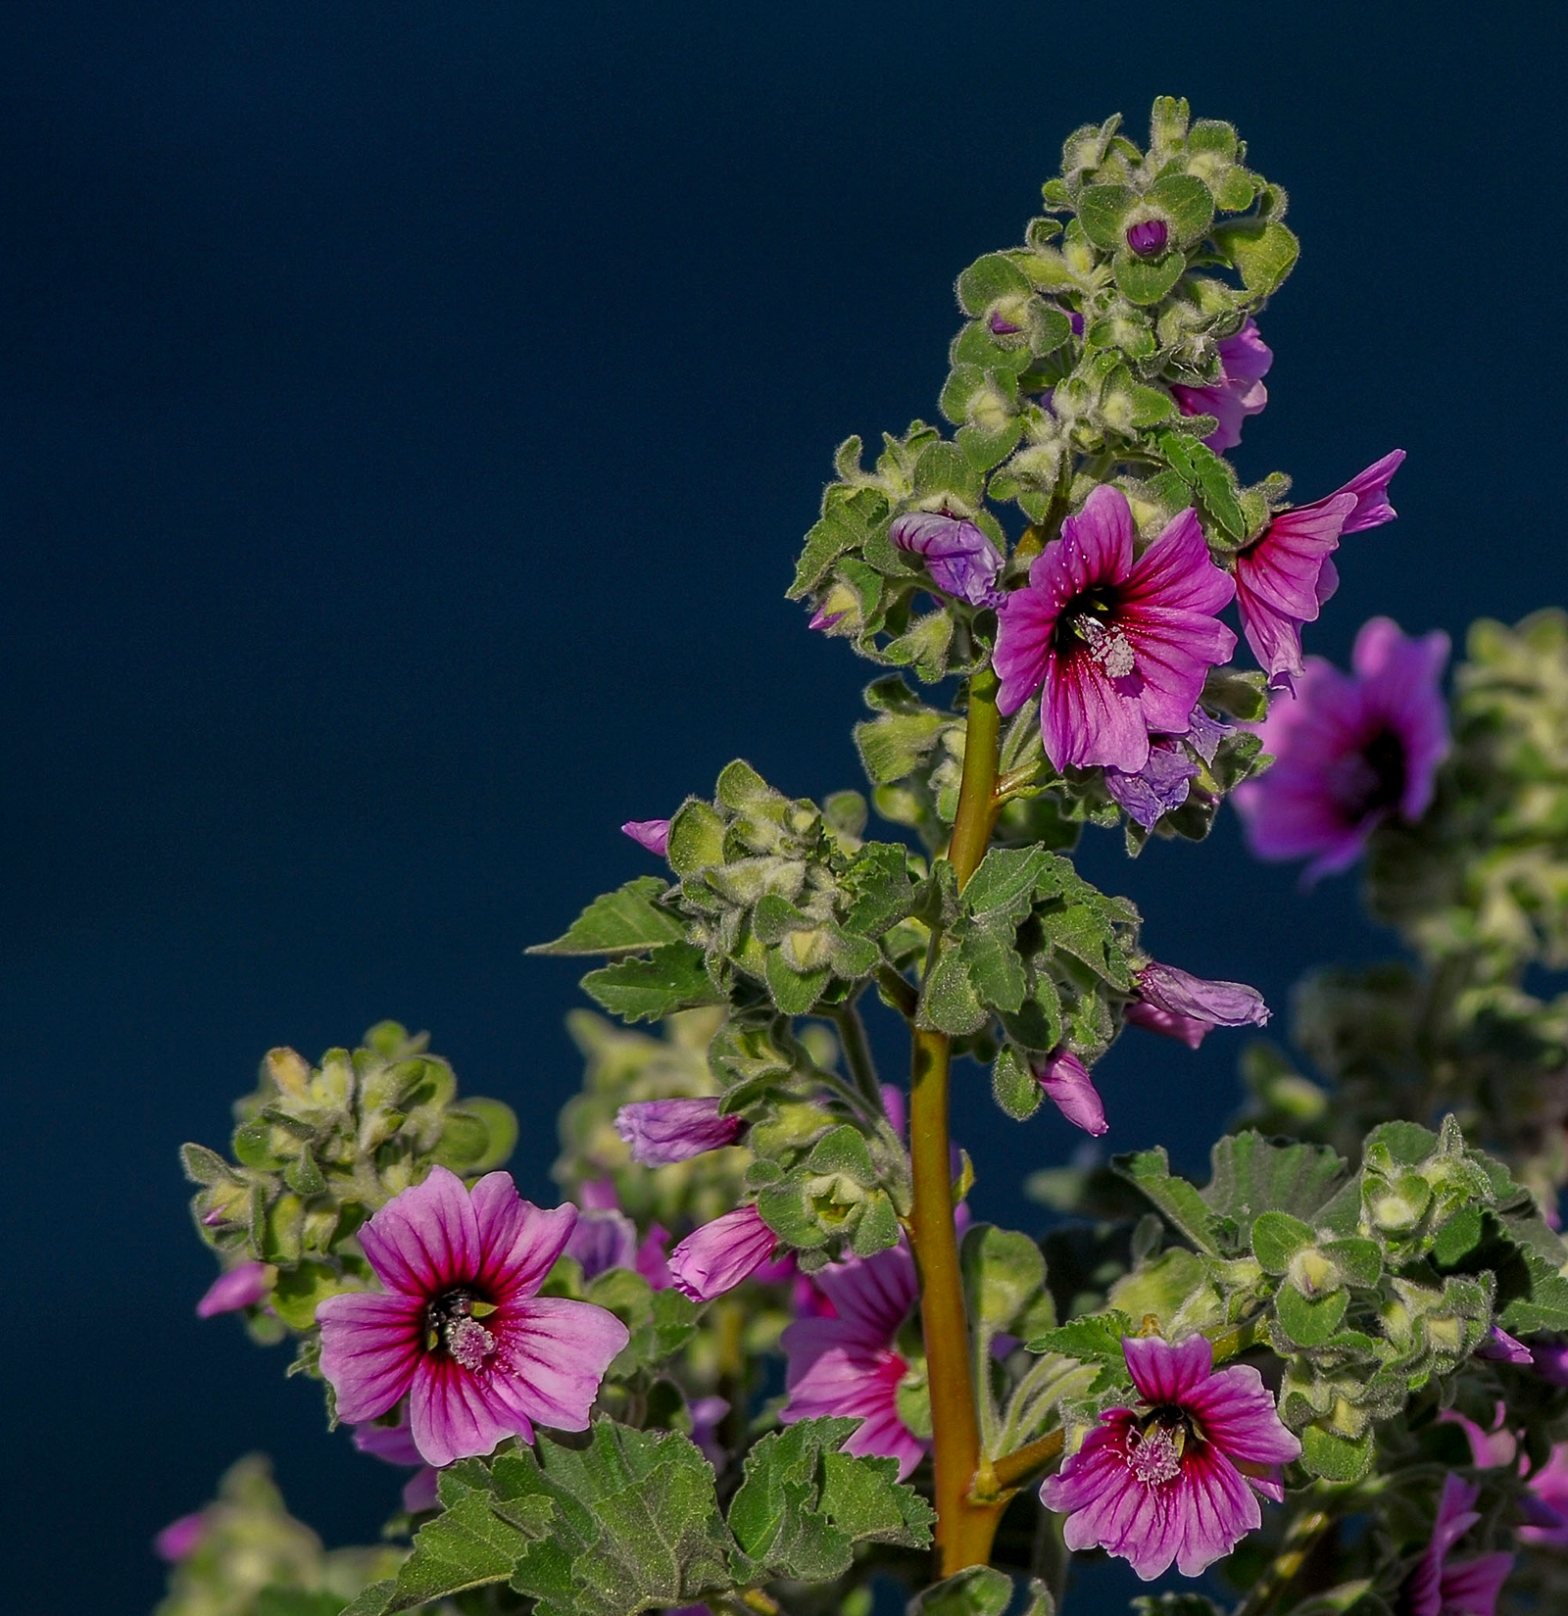 Tree mallow with flowers